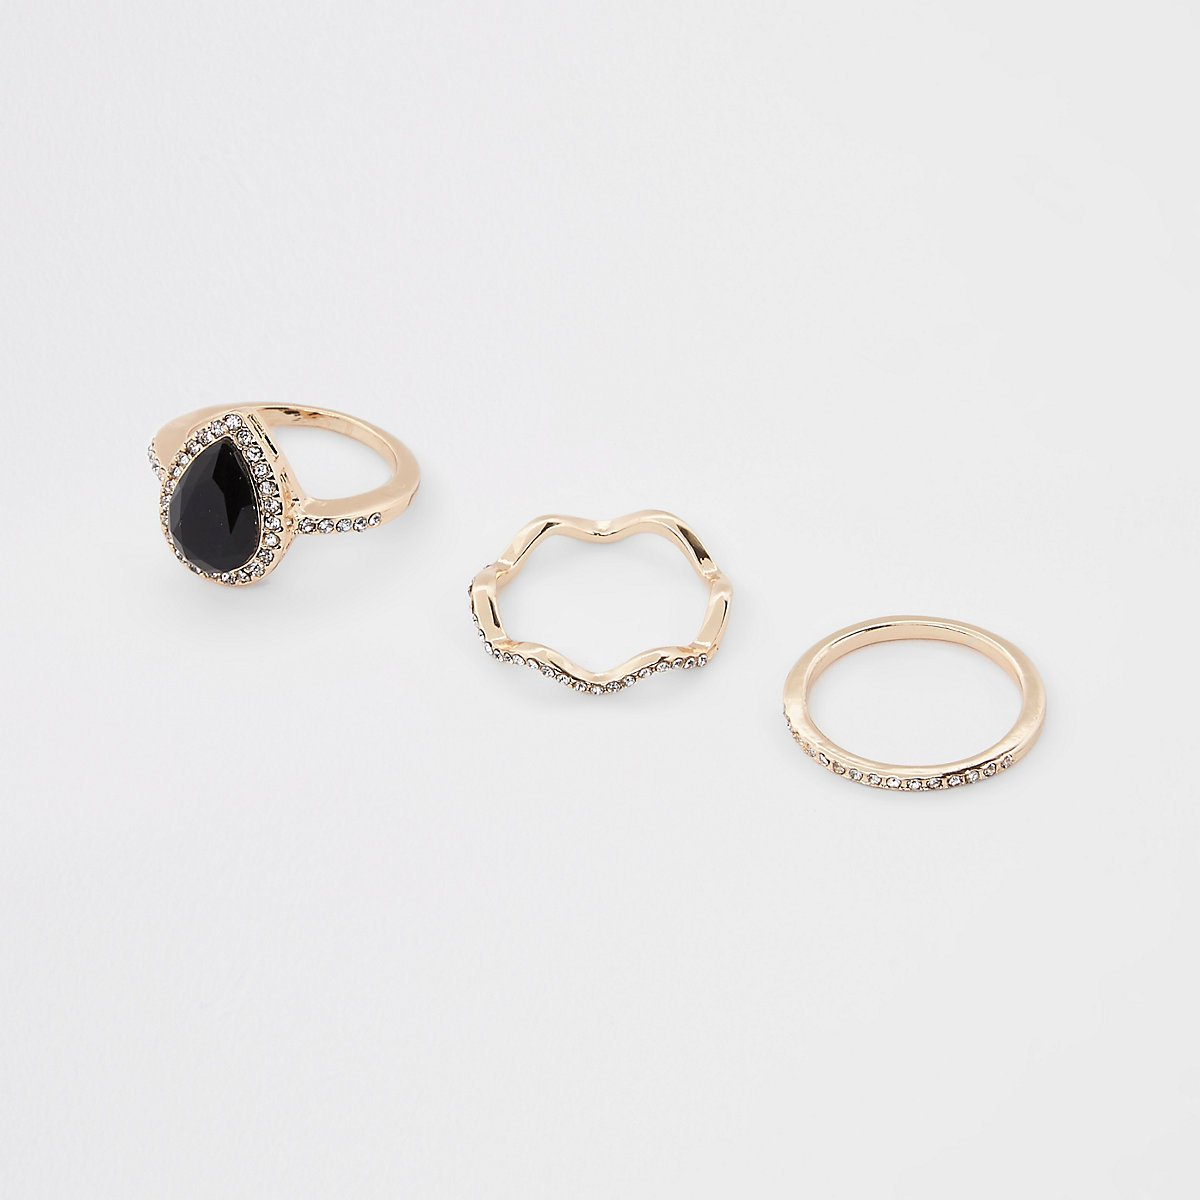 Gold color teardrop rhinestone paved ring pack - Rings - Jewelry - women